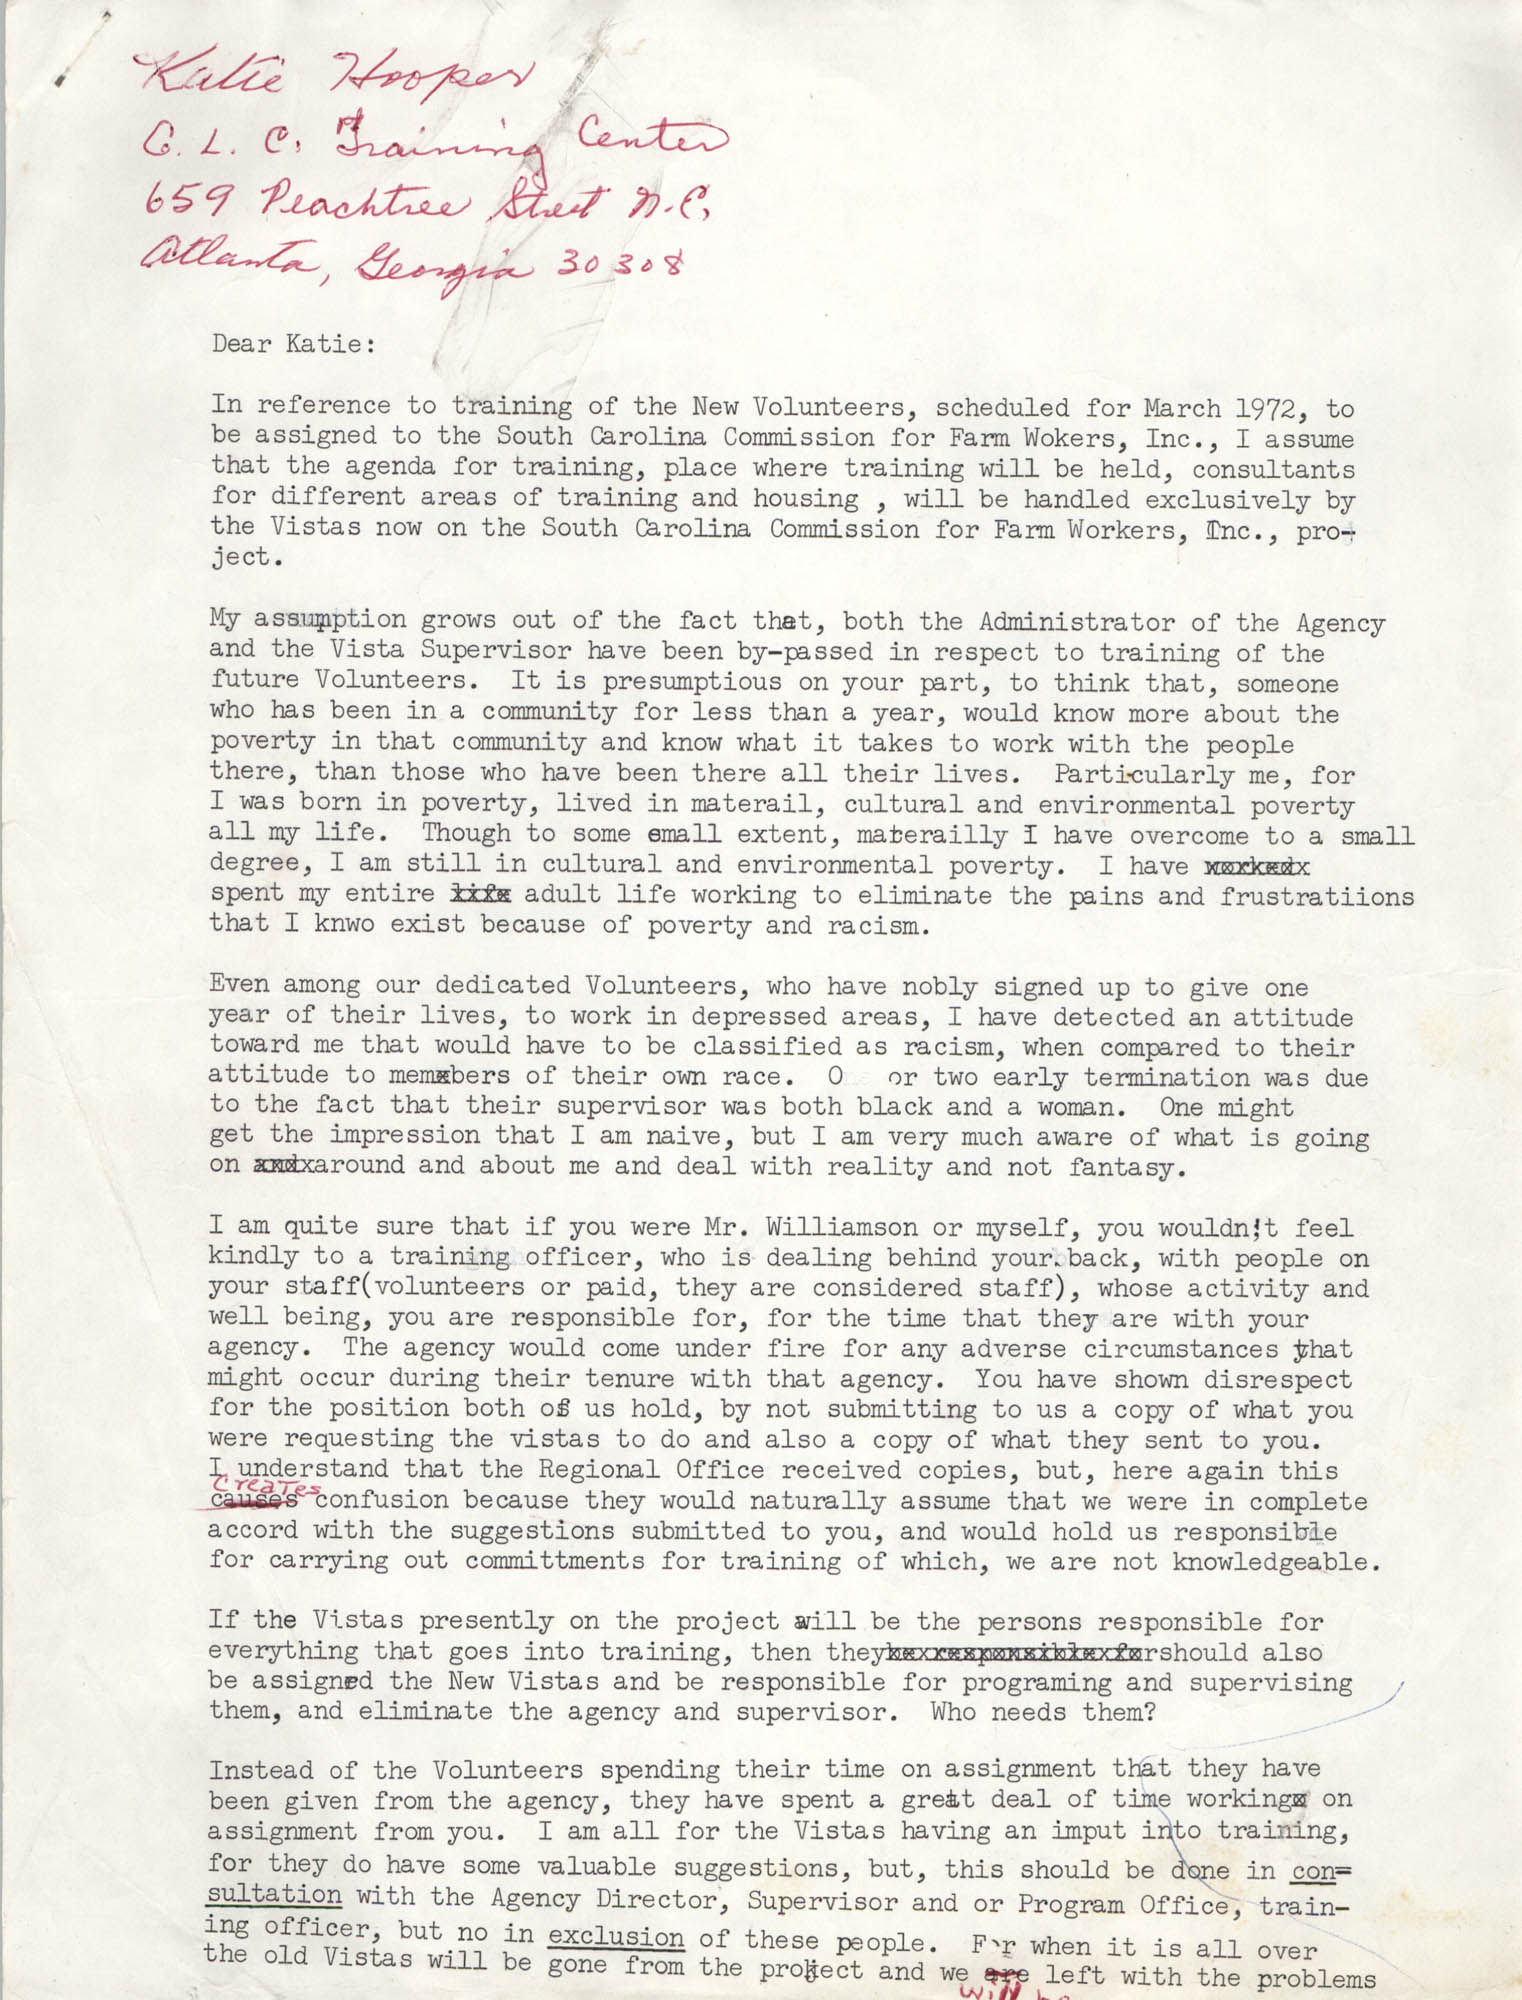 Letter from Bernice Robinson to Katie Hooper, 1972